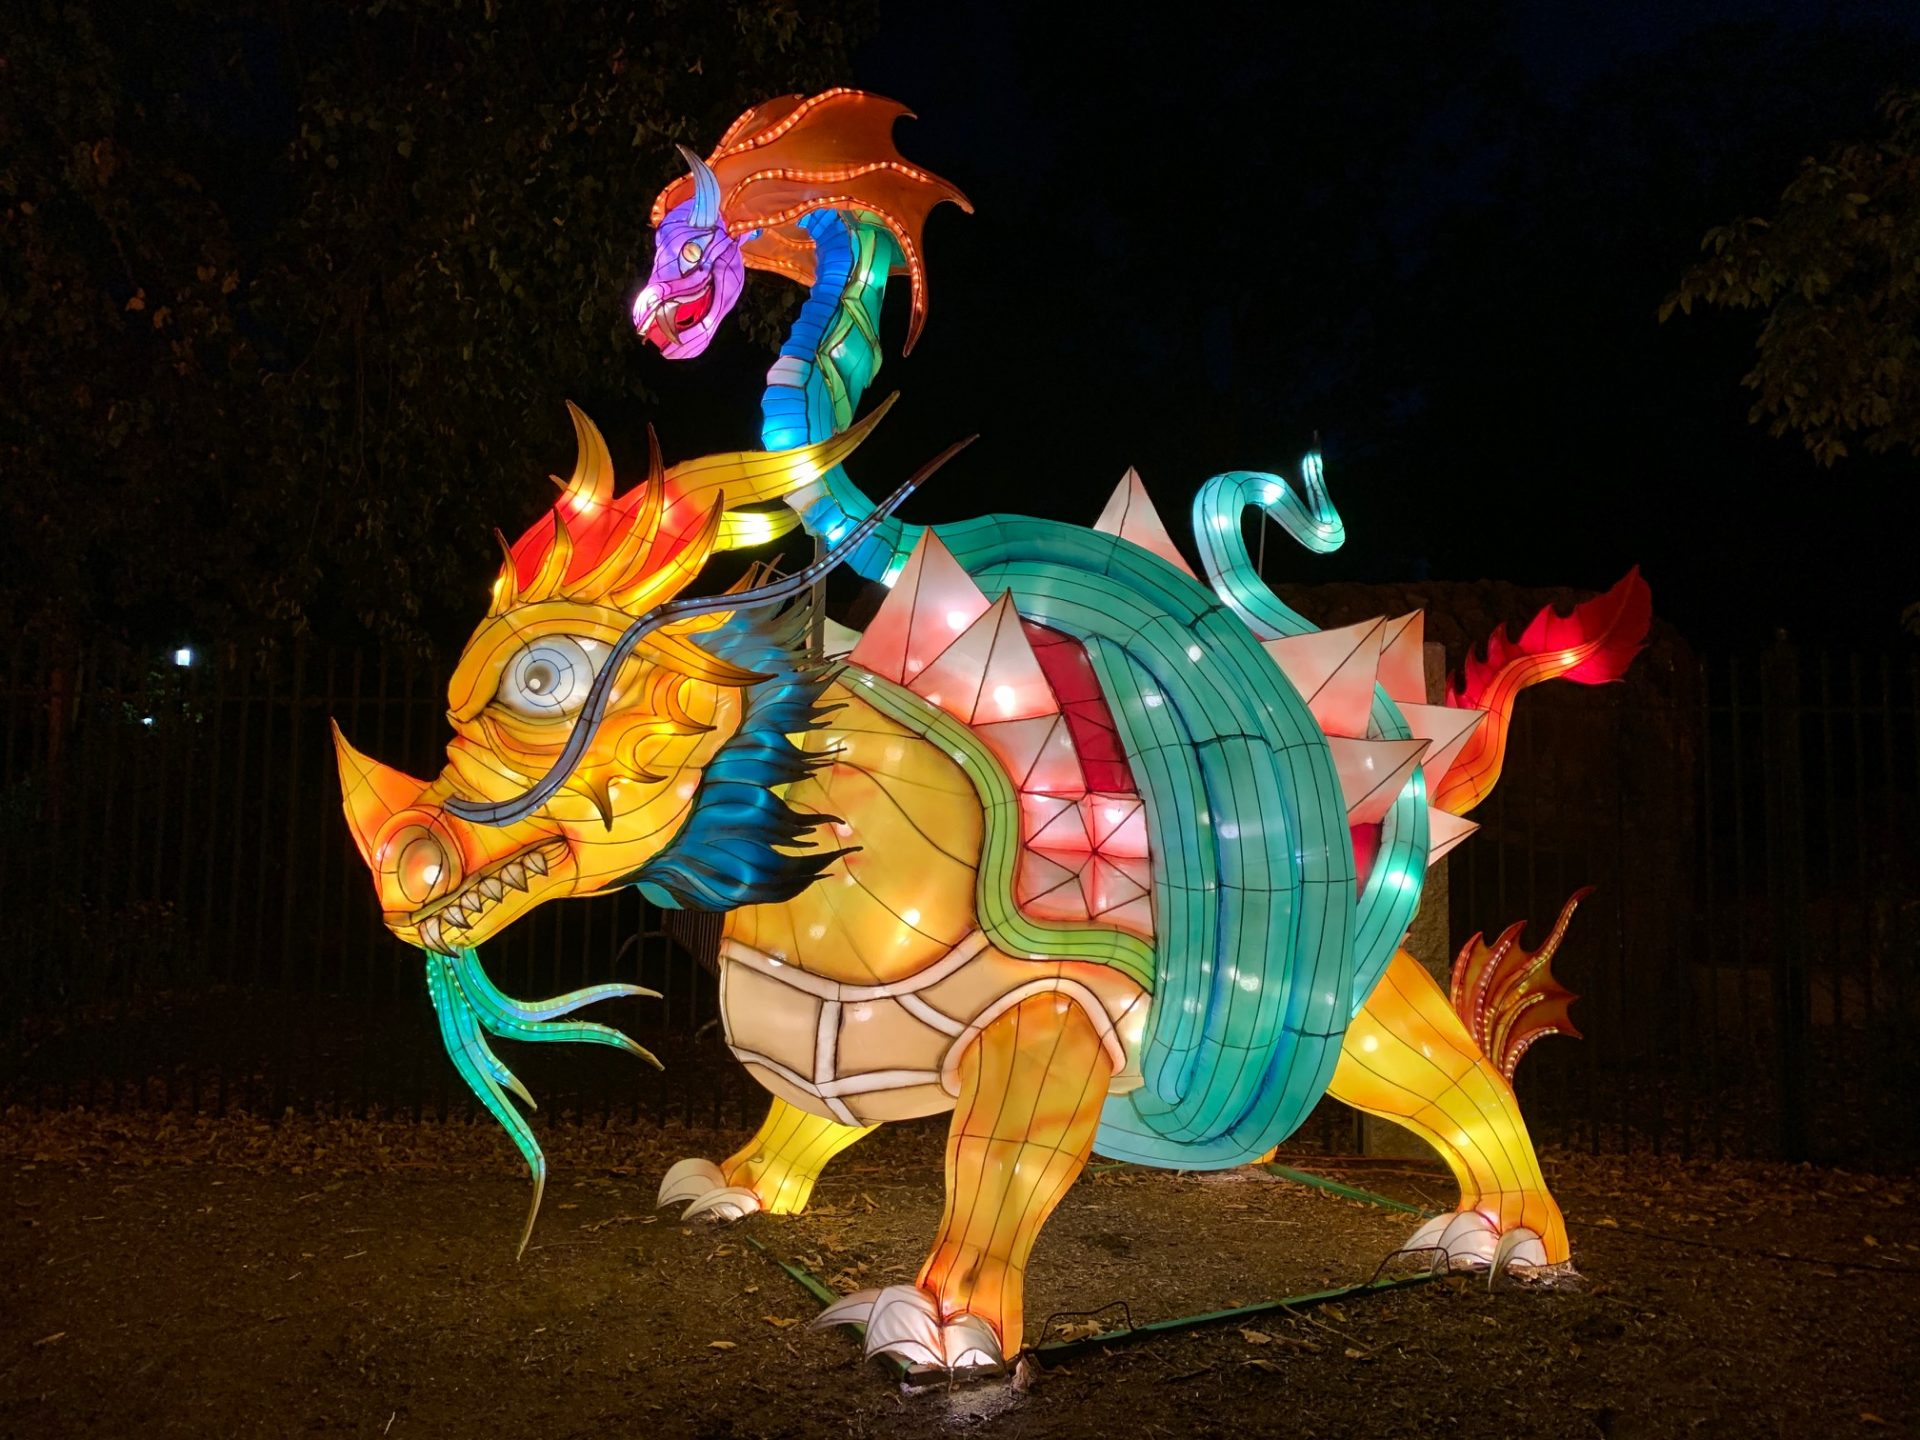 Boston Lights at the Franklin Park Zoo will impress visitors with more than 50 large displays comprised of hundreds of colorful lanterns.